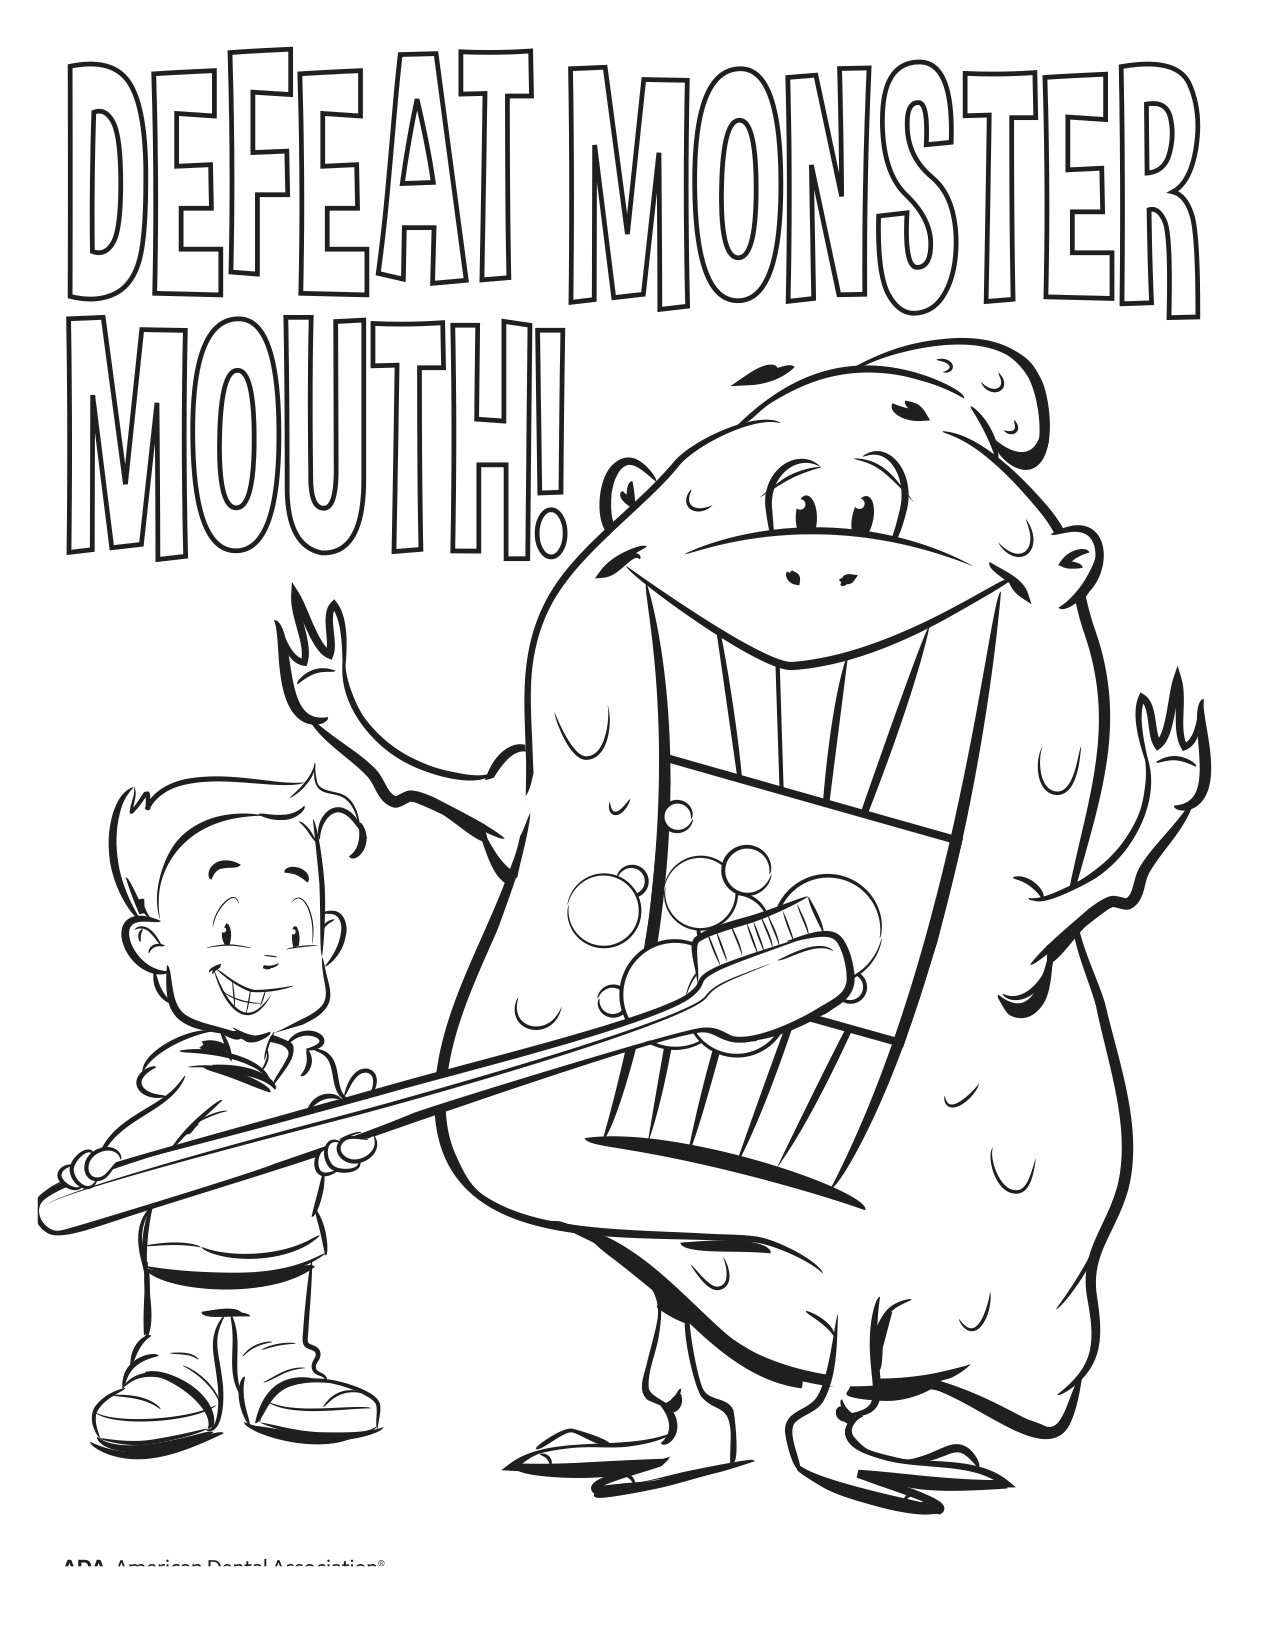 Medical Coloring Sheets For Kids  Your Child Can Win an iPad Mini